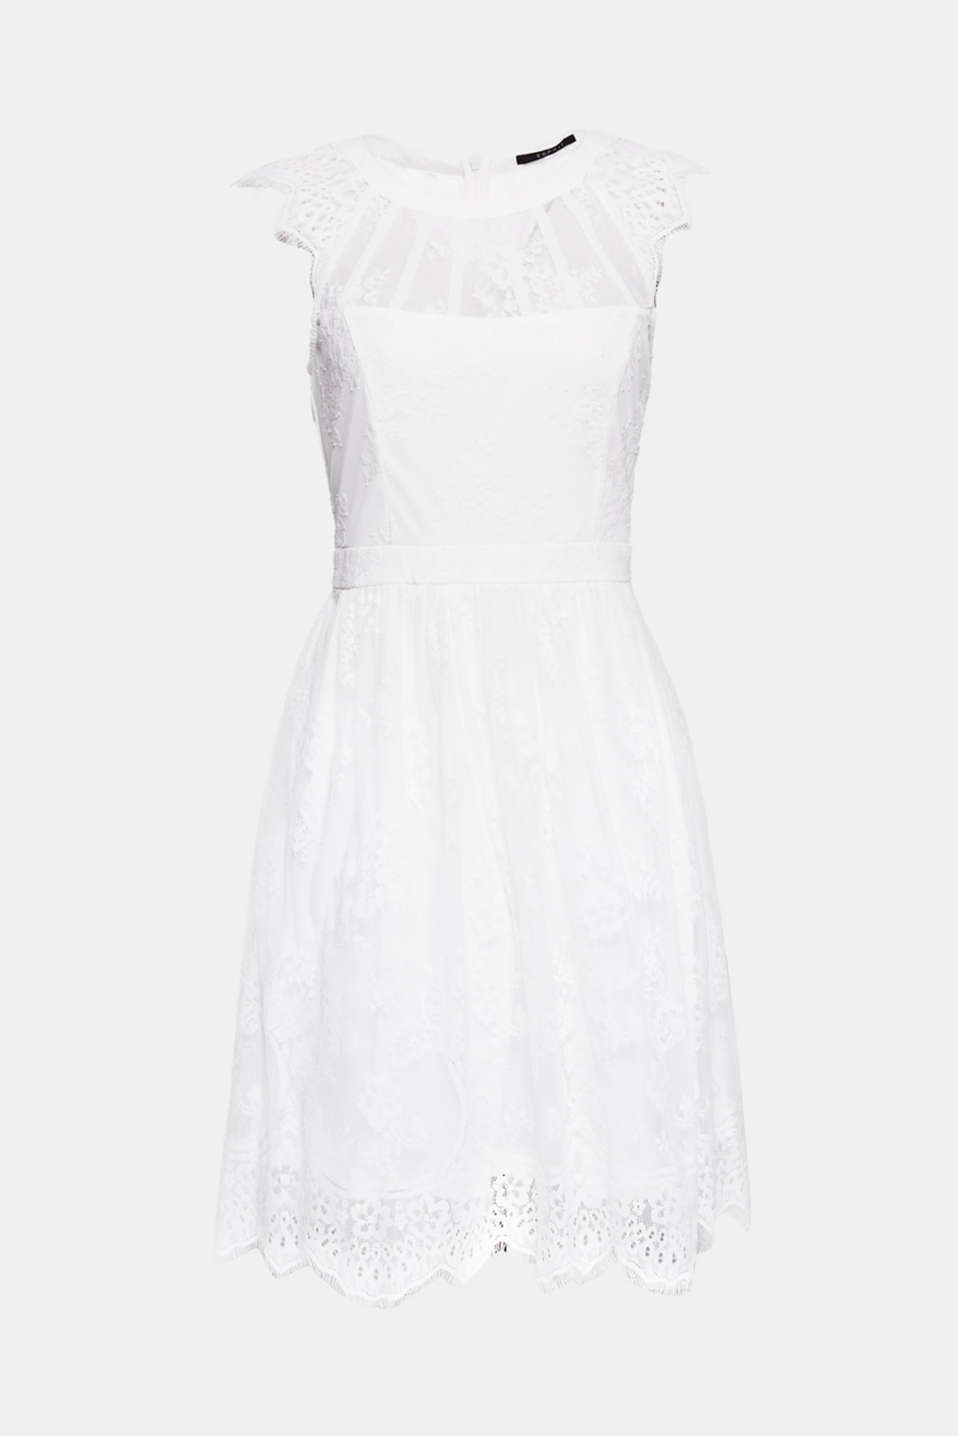 This short, feminine wedding dress in elegant floral lace with decorative straps at the neckline is fit for a princess.